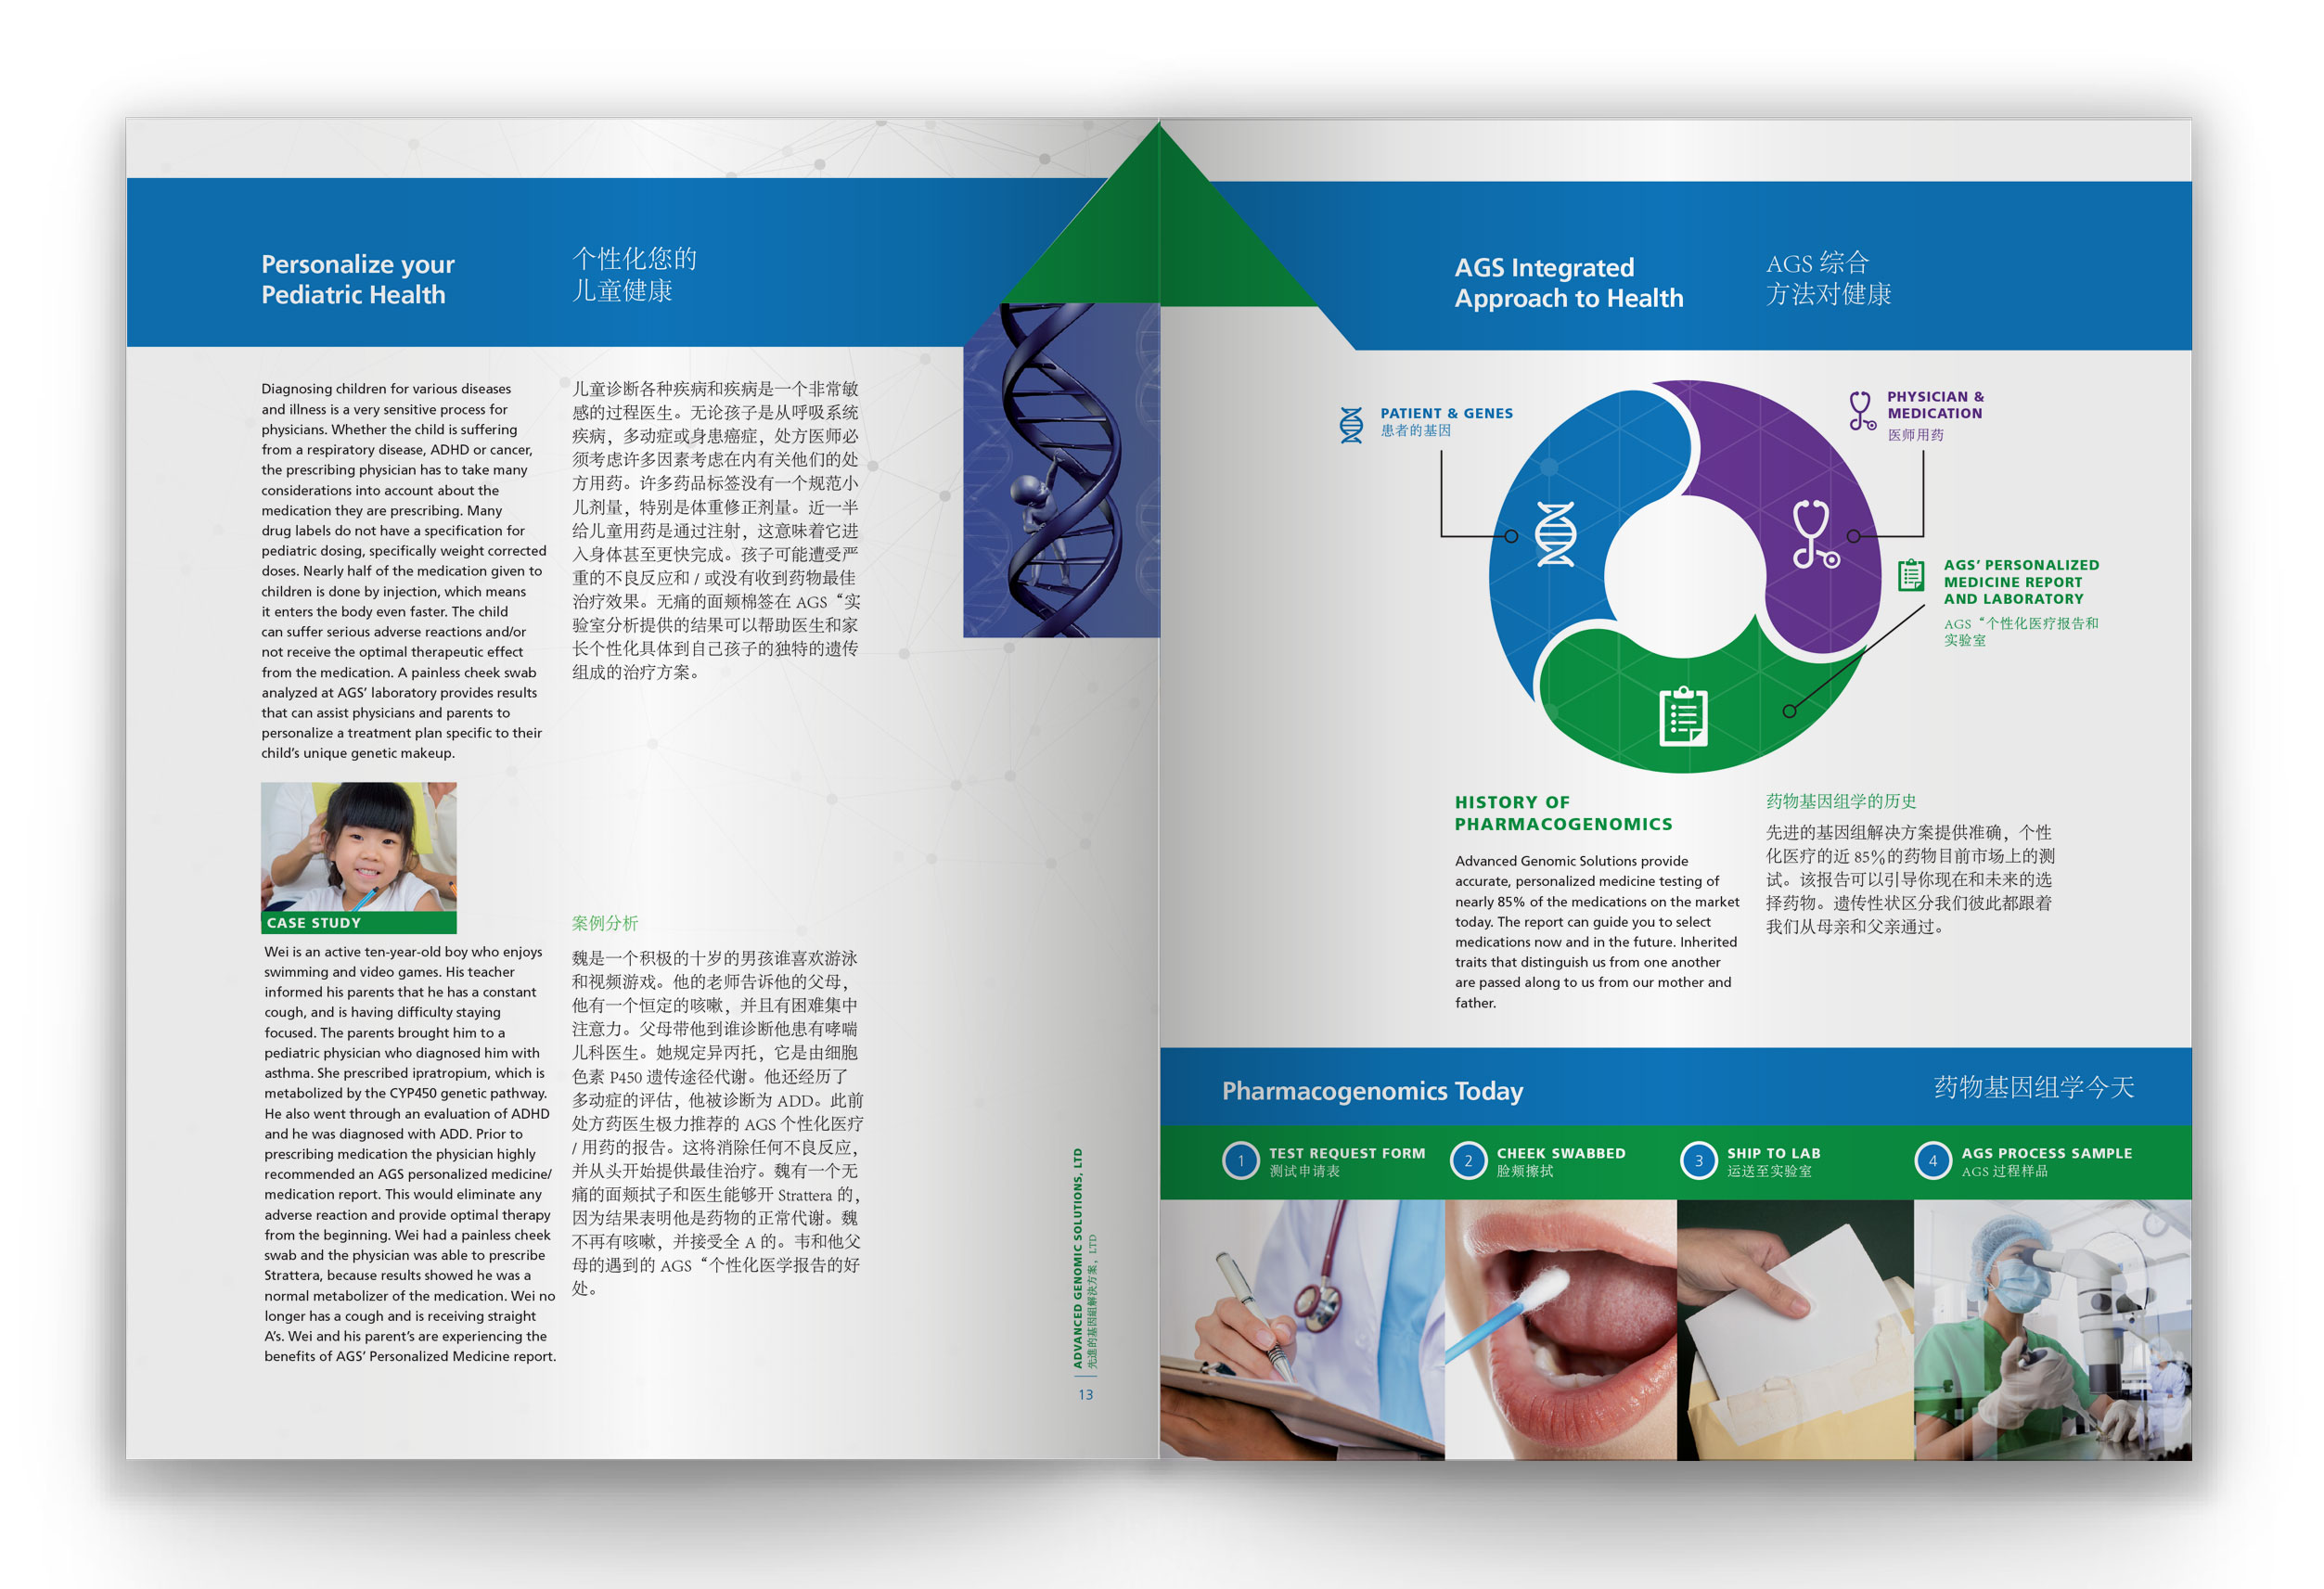 Advanced Genomic Solutions Marketing Collateral Interior Spread image